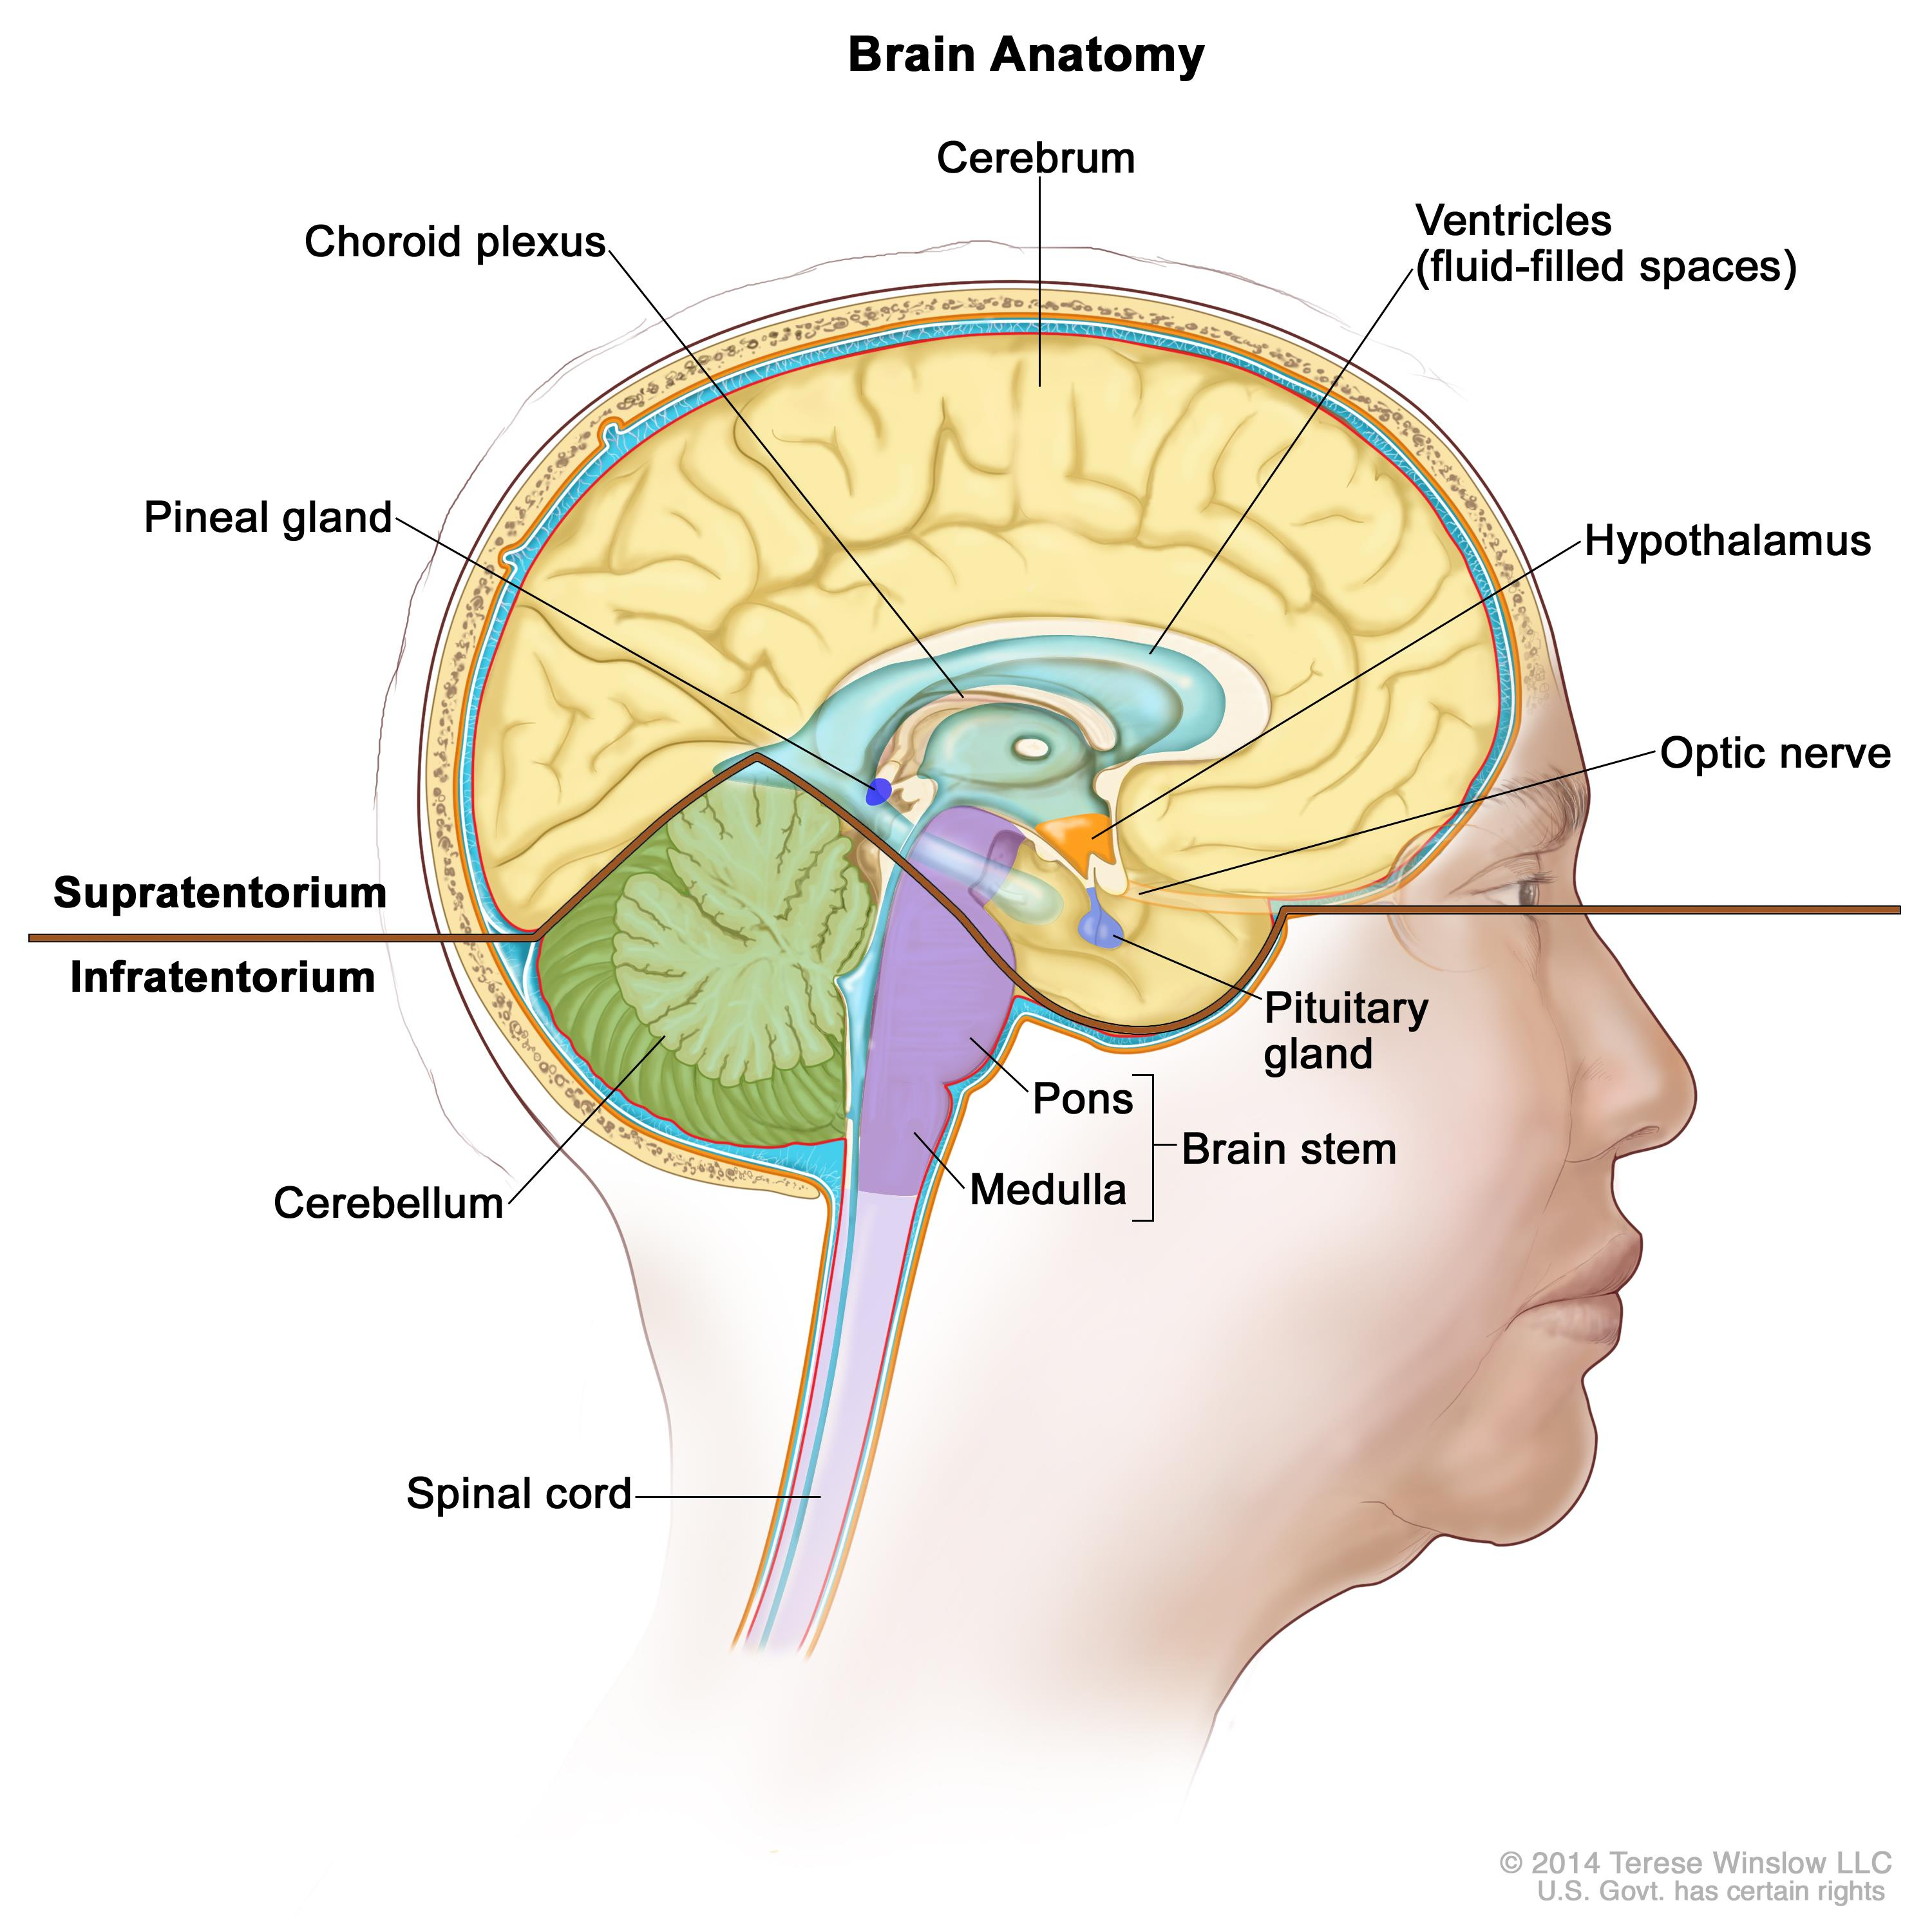 Symptoms of a brain tumor, classification, treatment methods and other medical aspects of brain tumors